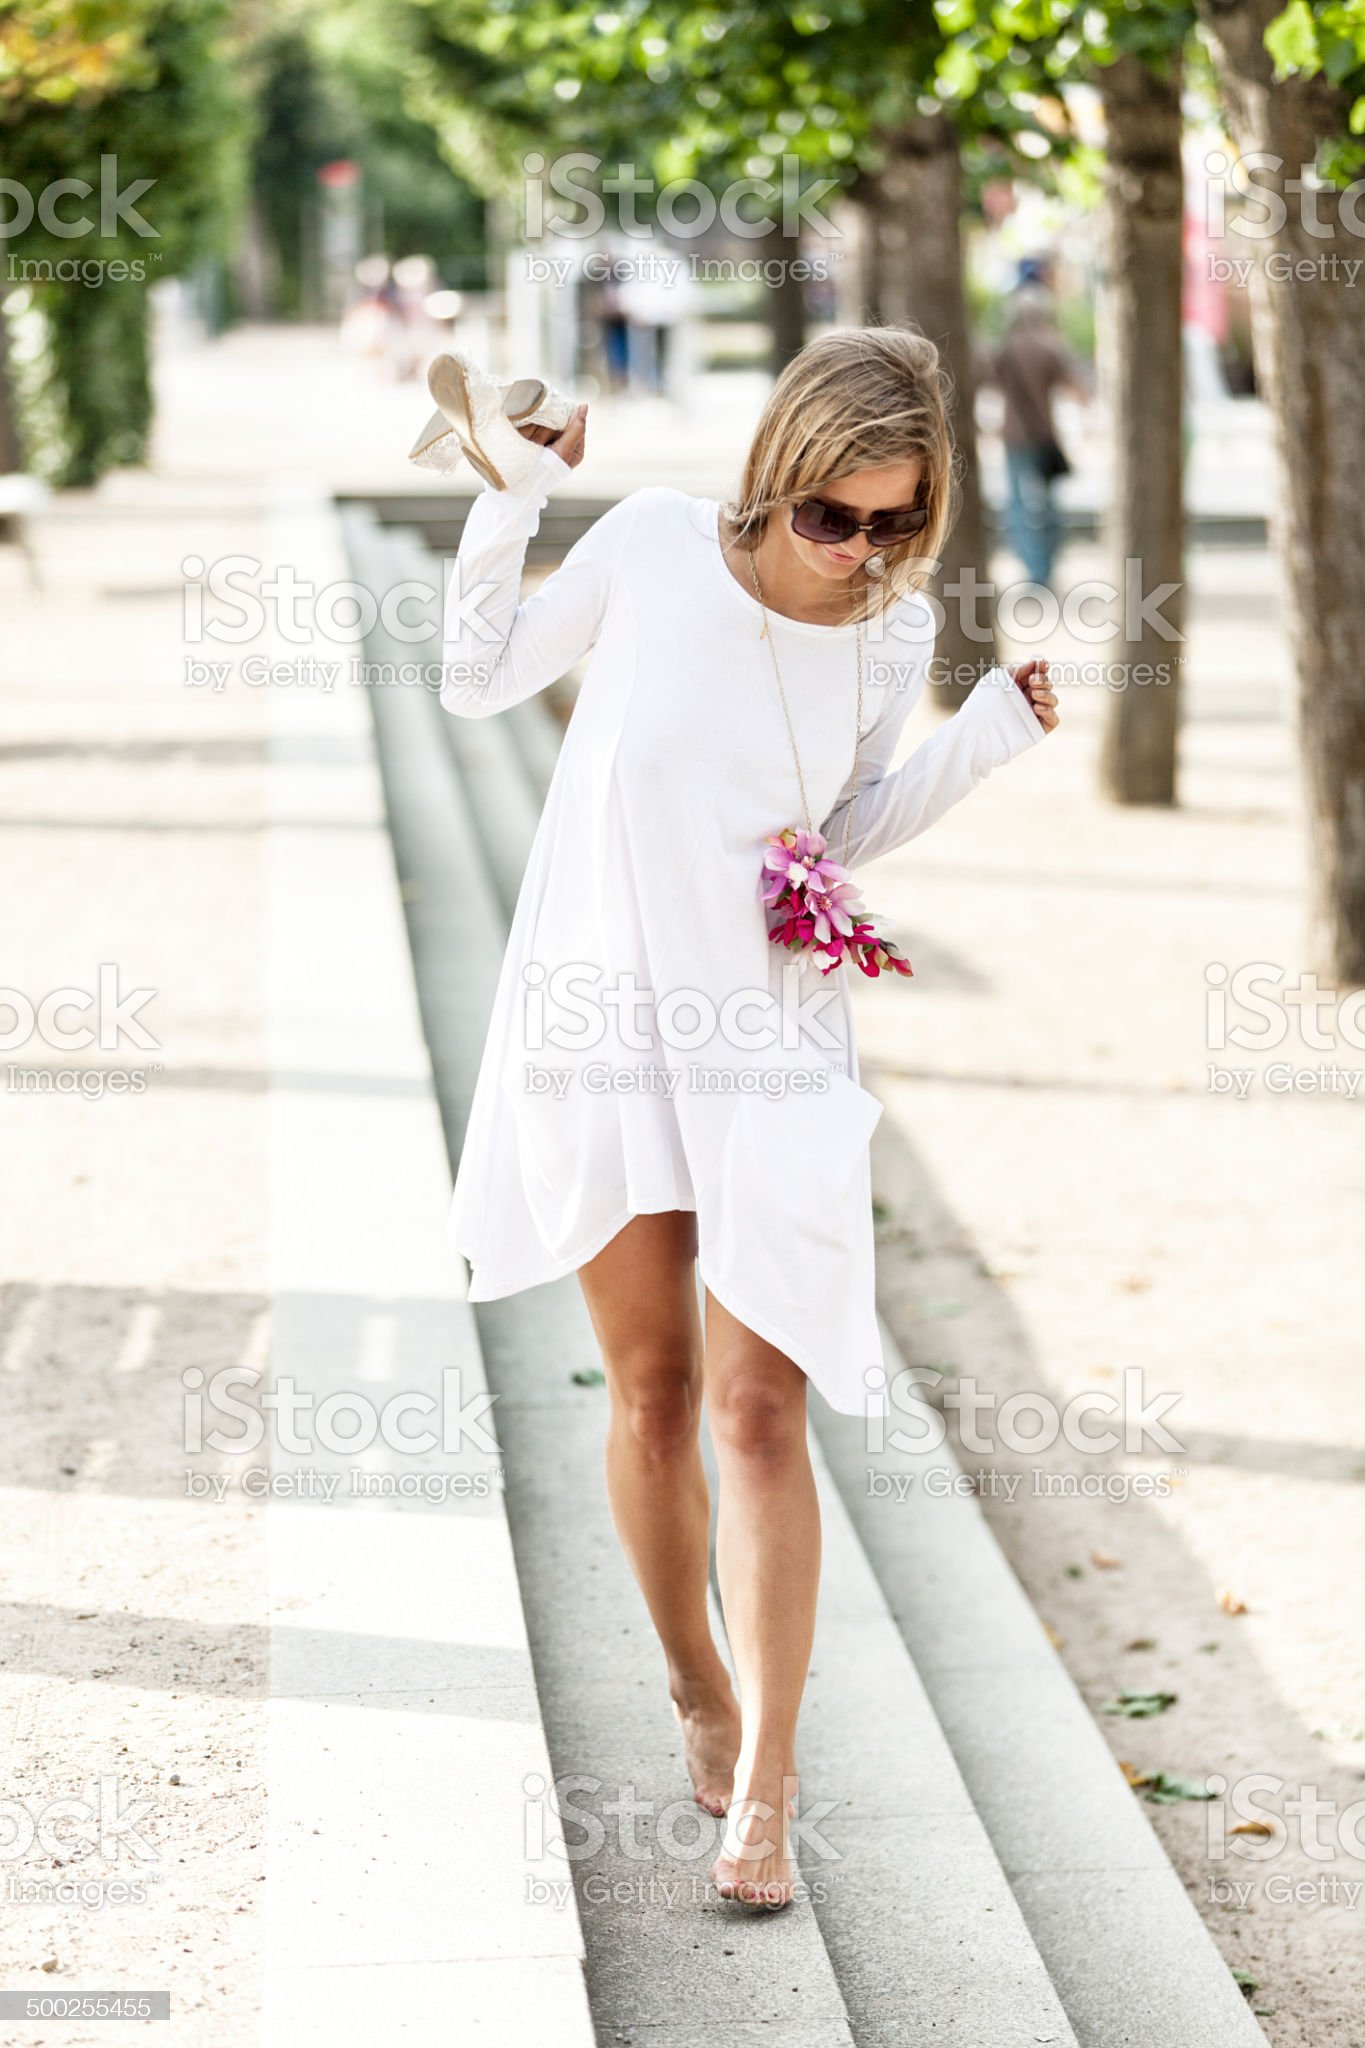 https://media.istockphoto.com/photos/attractive-woman-walking-on-pavement-picture-id500255455?s=2048x2048